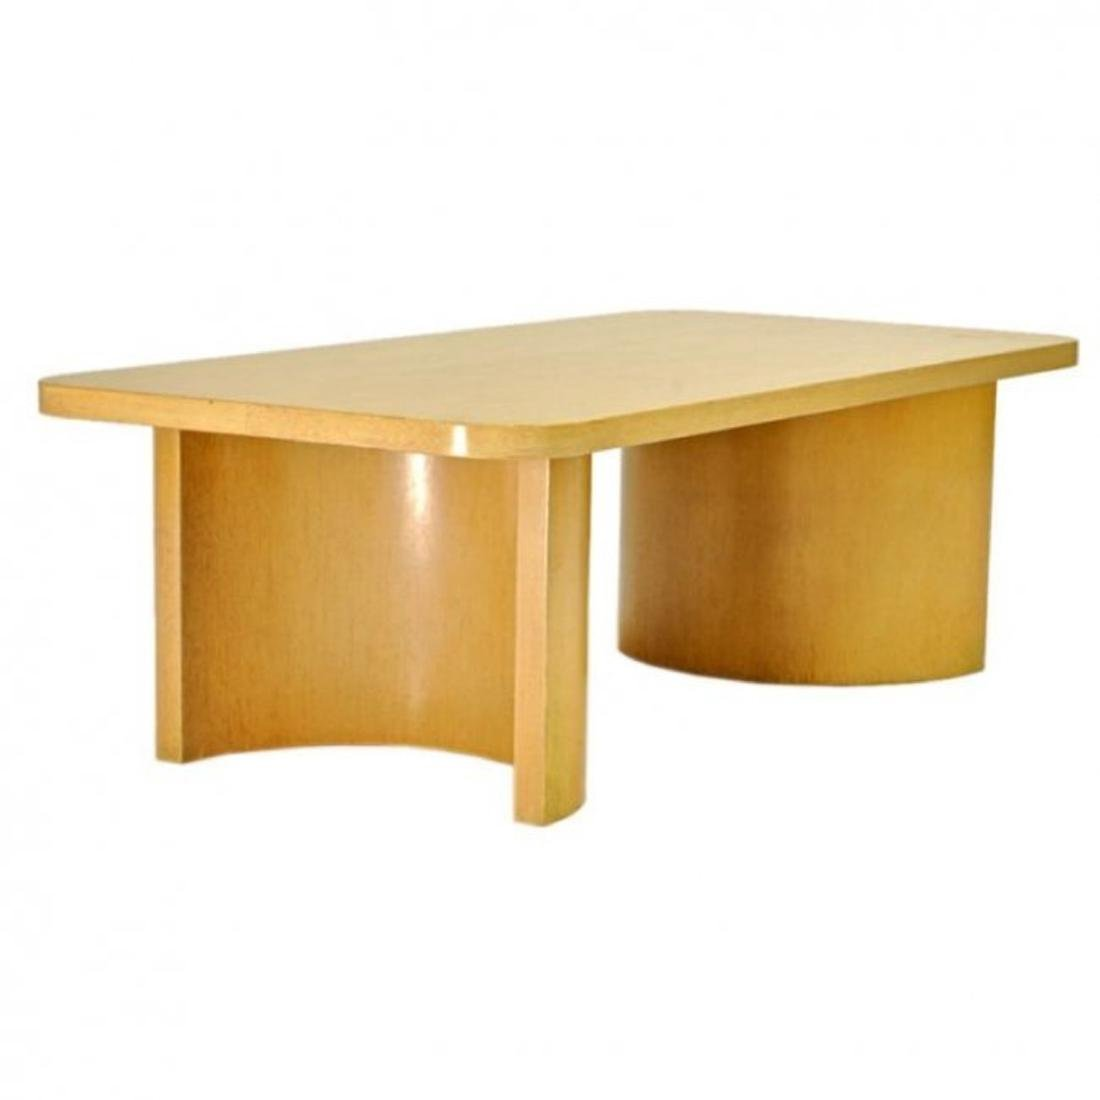 Gilbert Rohde for Herman Miller Coffee Table